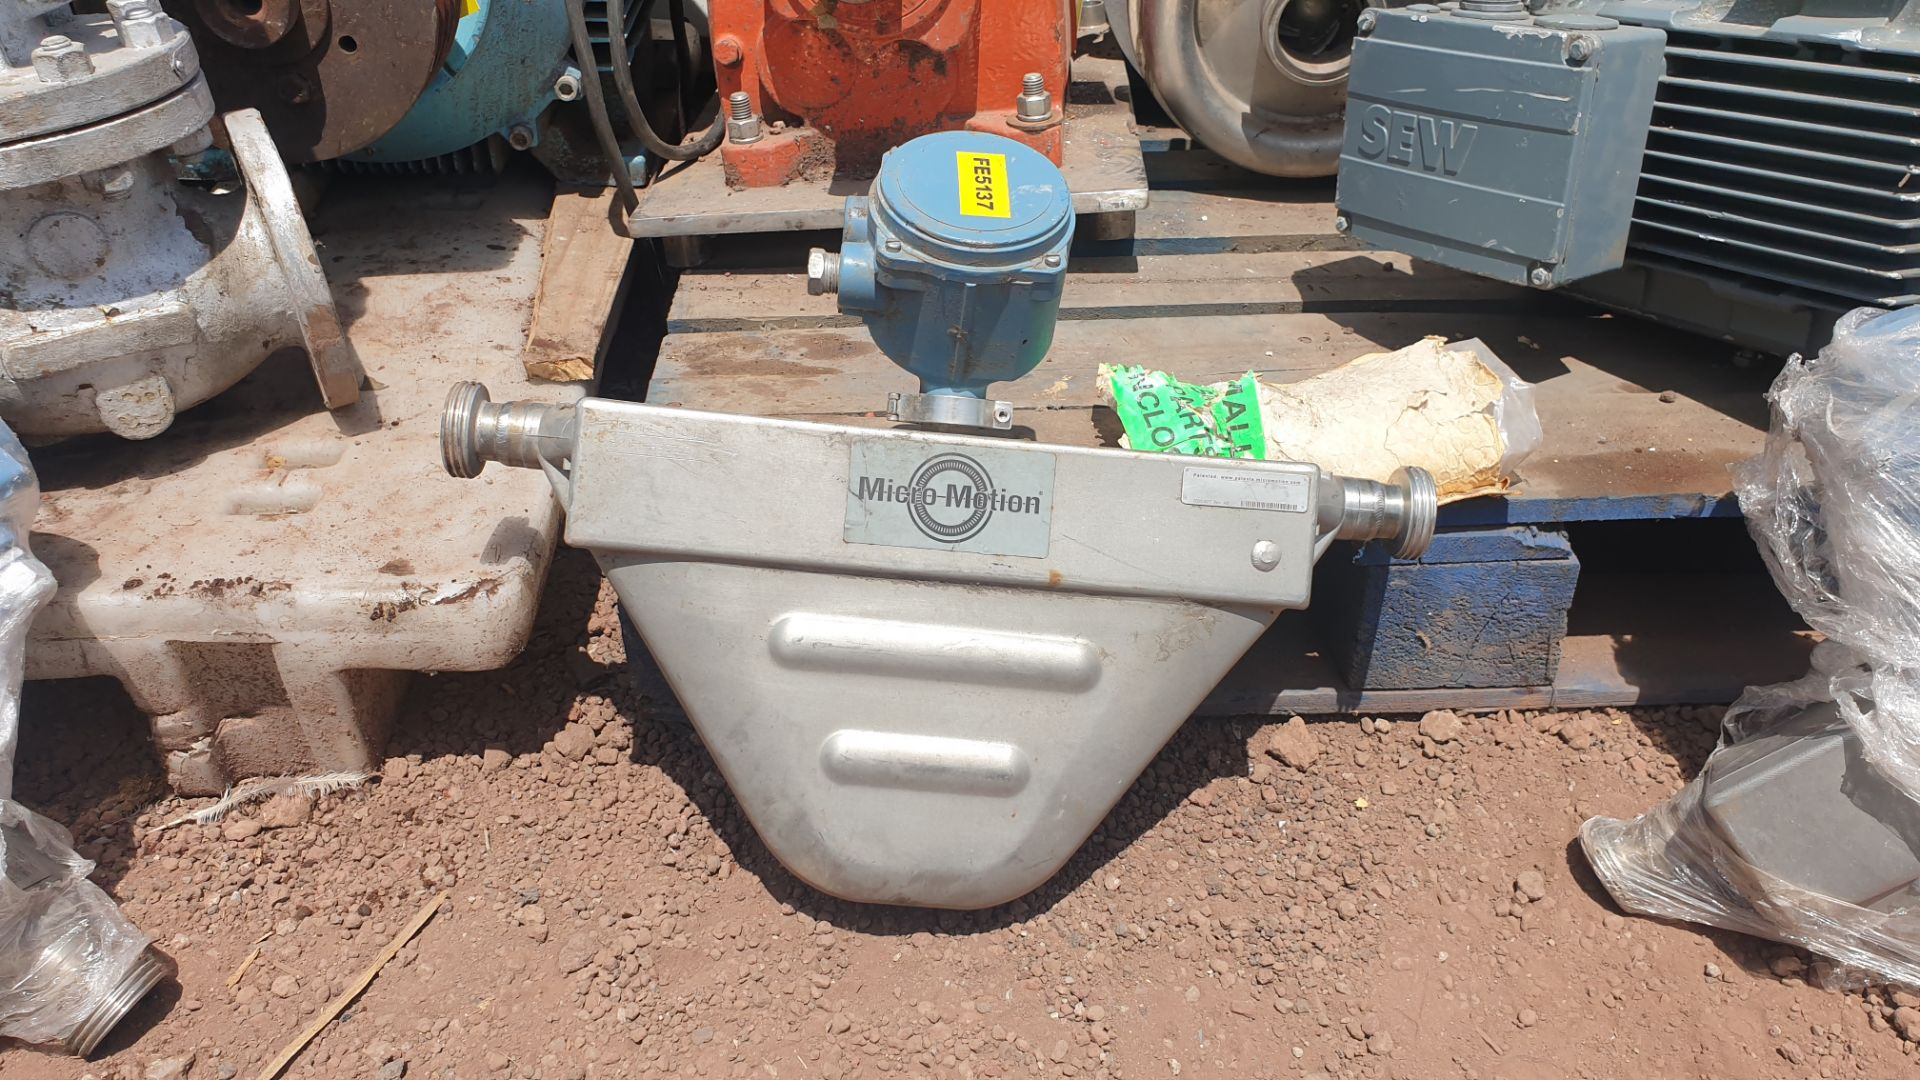 Micromotion Flow meter, model F100S230C2BMSZZZZ NS 14639520 2016 - Image 8 of 10